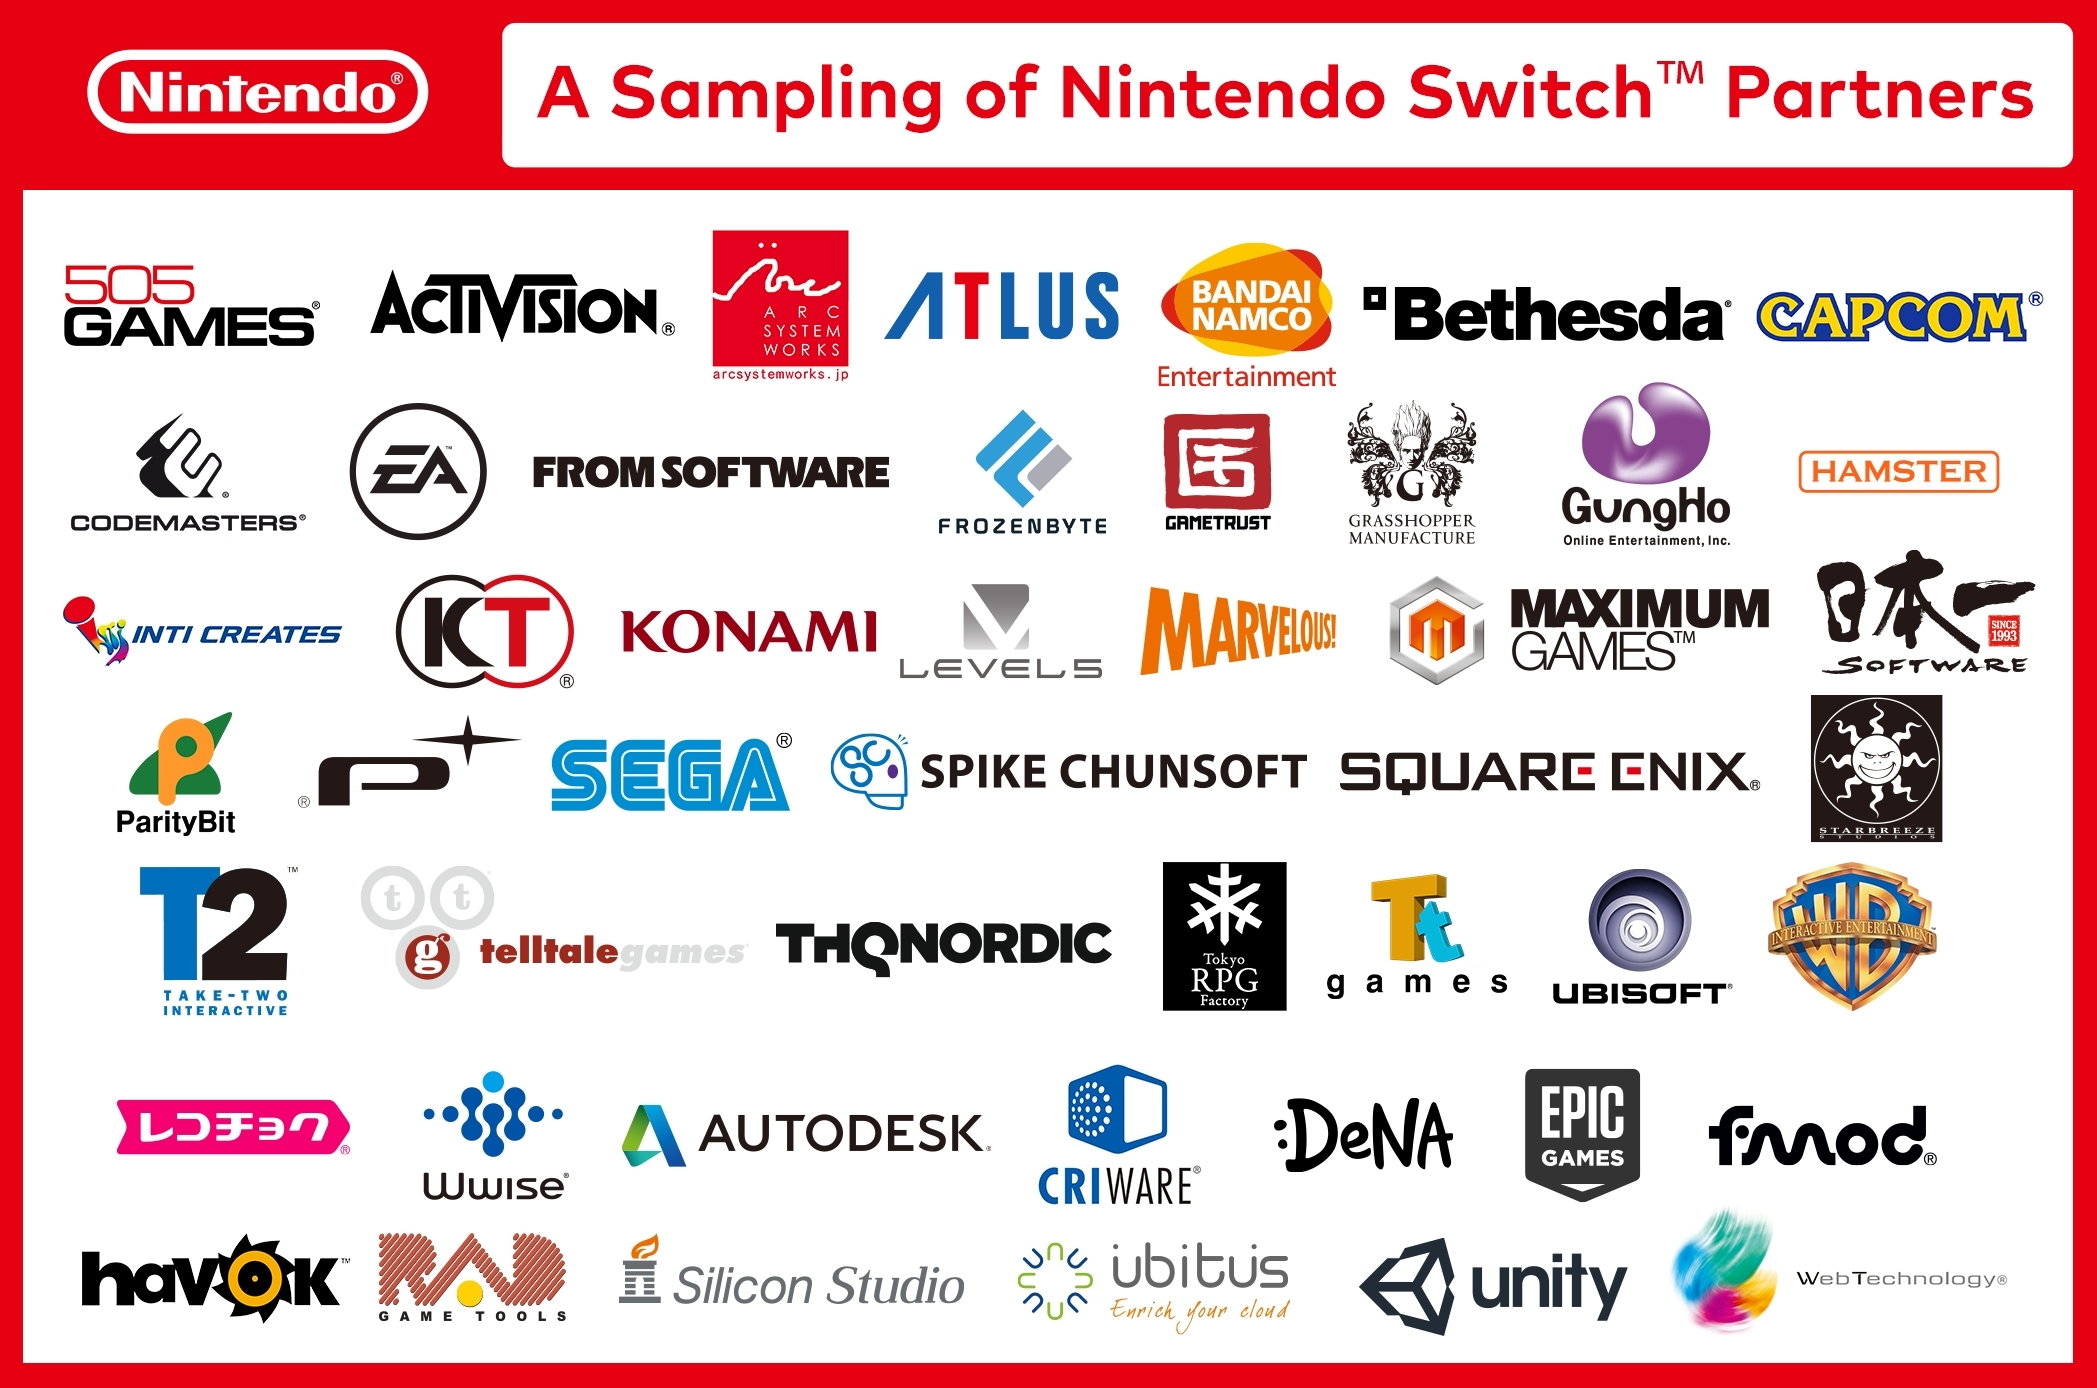 NX_Partners.jpg?download=1